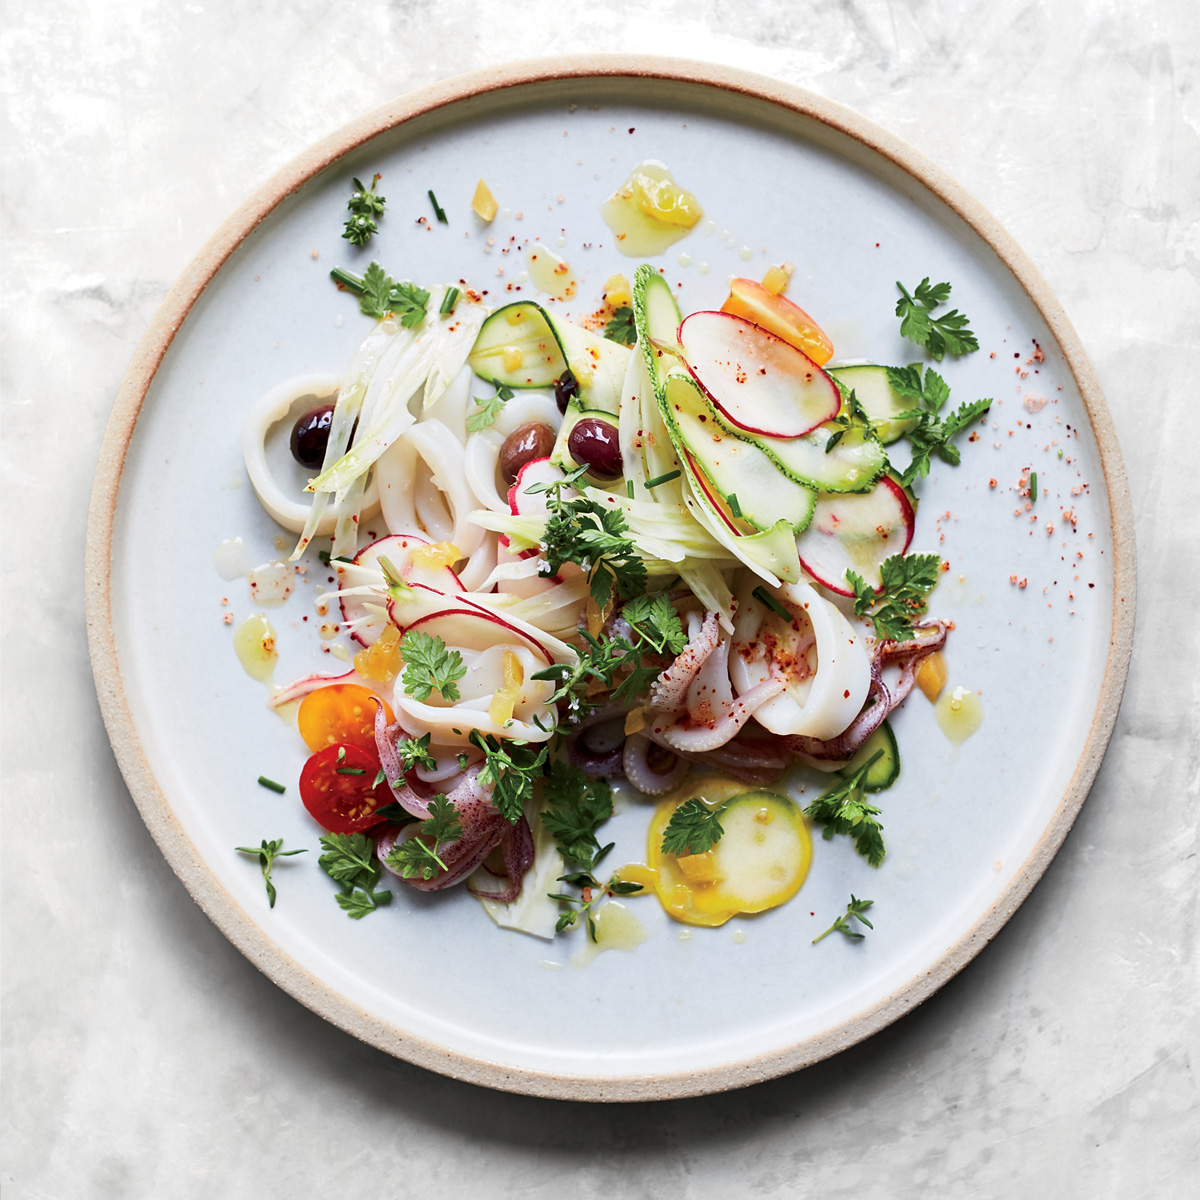 Squid and Summer Vegetable Salad with Preserved Lemon Dressing